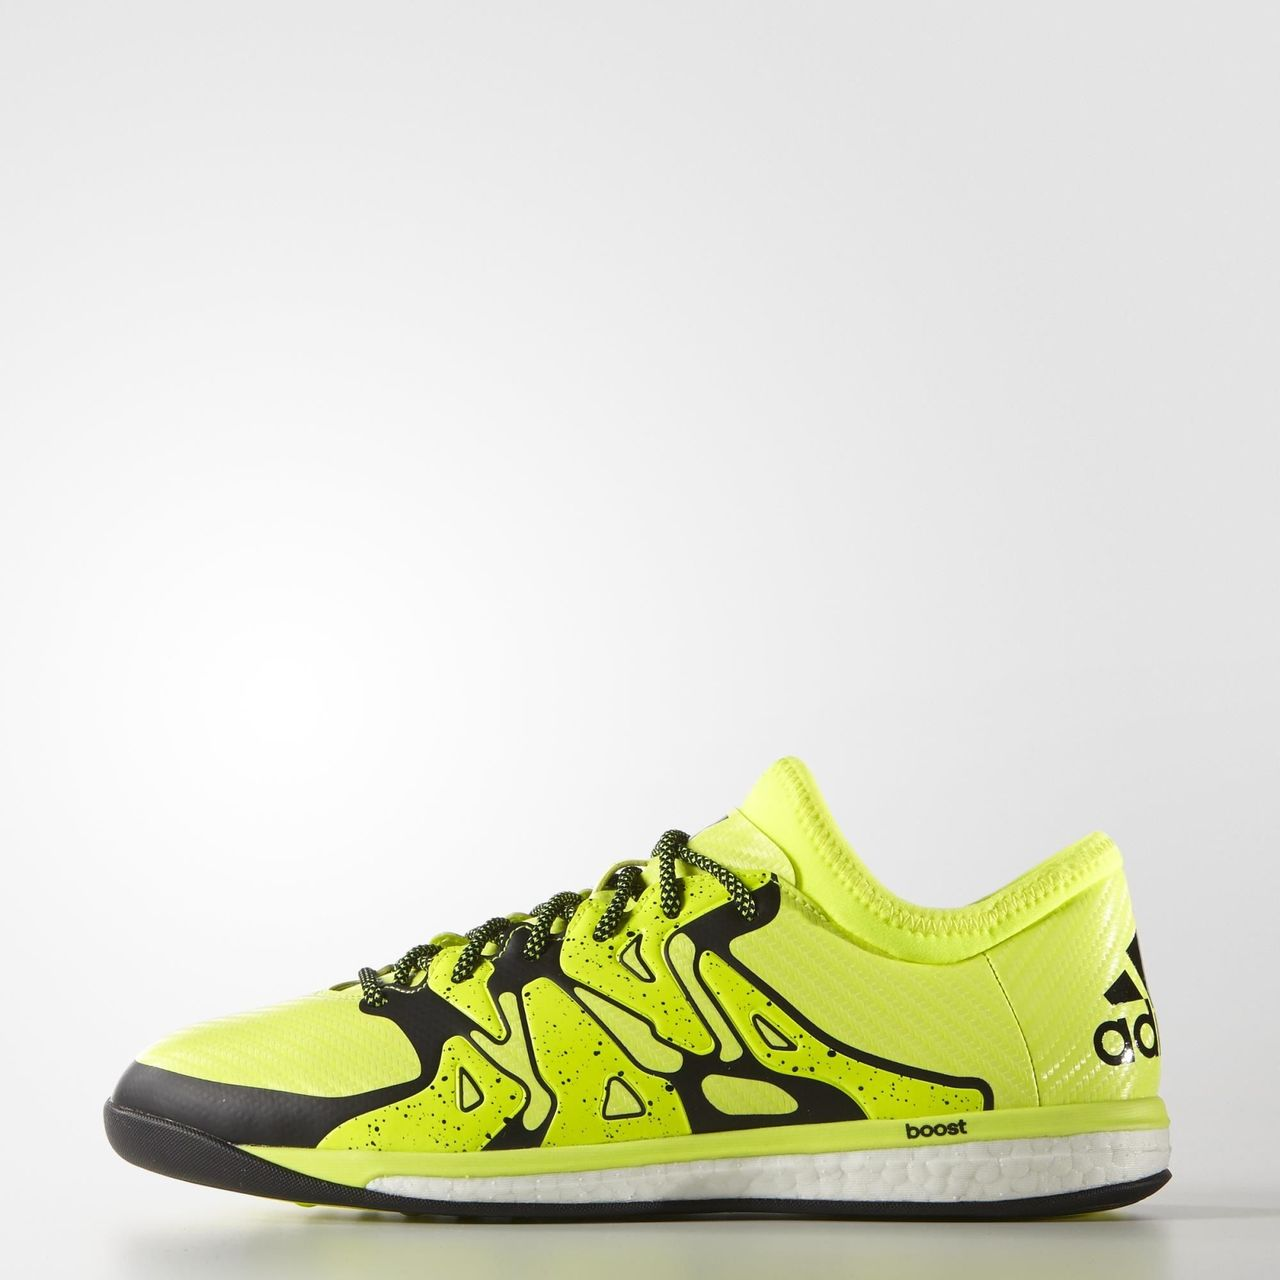 ad08a4cc08f2 Adidas X15.1 Boost Indoor Shoes - Solar Yellow   Core Black   Frozen ...